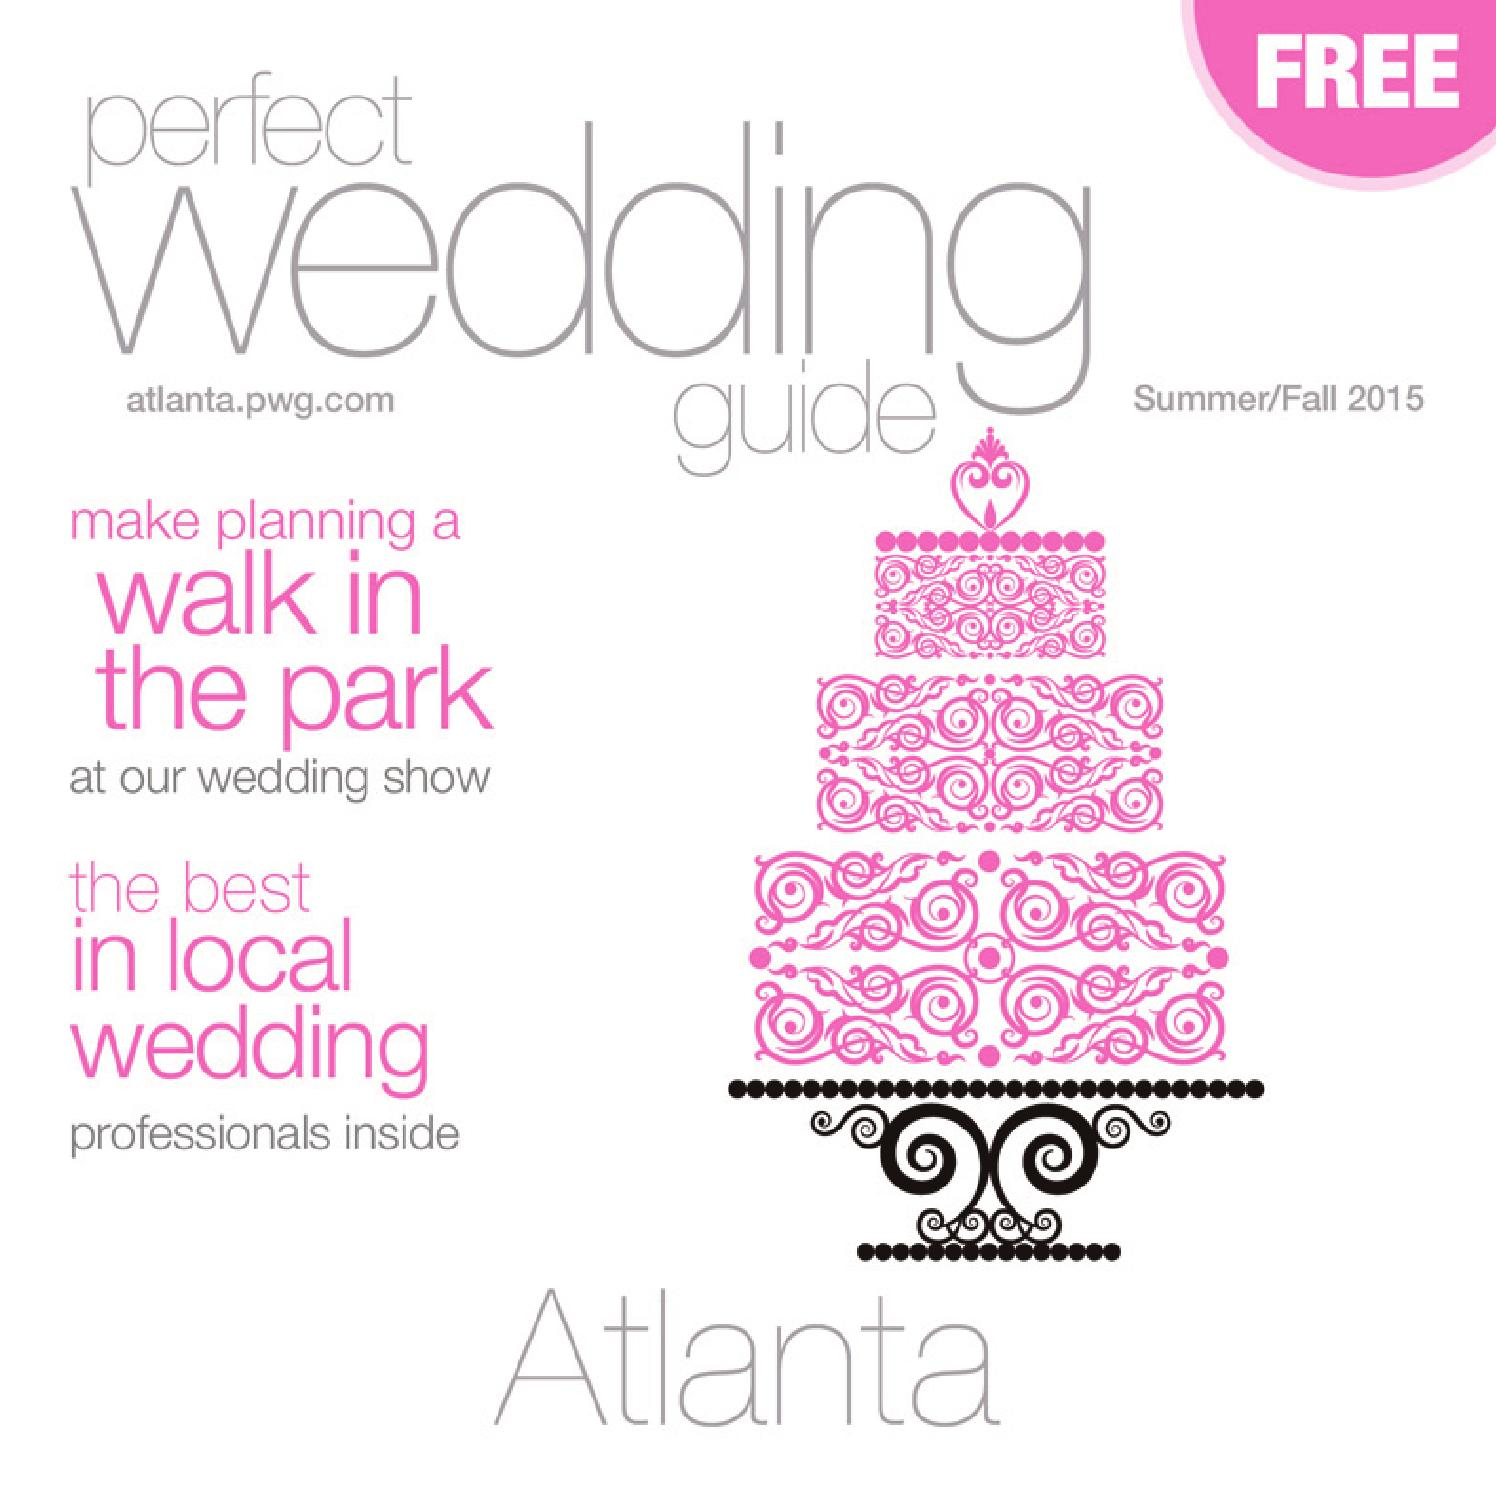 Perfect Wedding Guide Atlanta Summer/Fall 2015 by Rick Caldwell - issuu